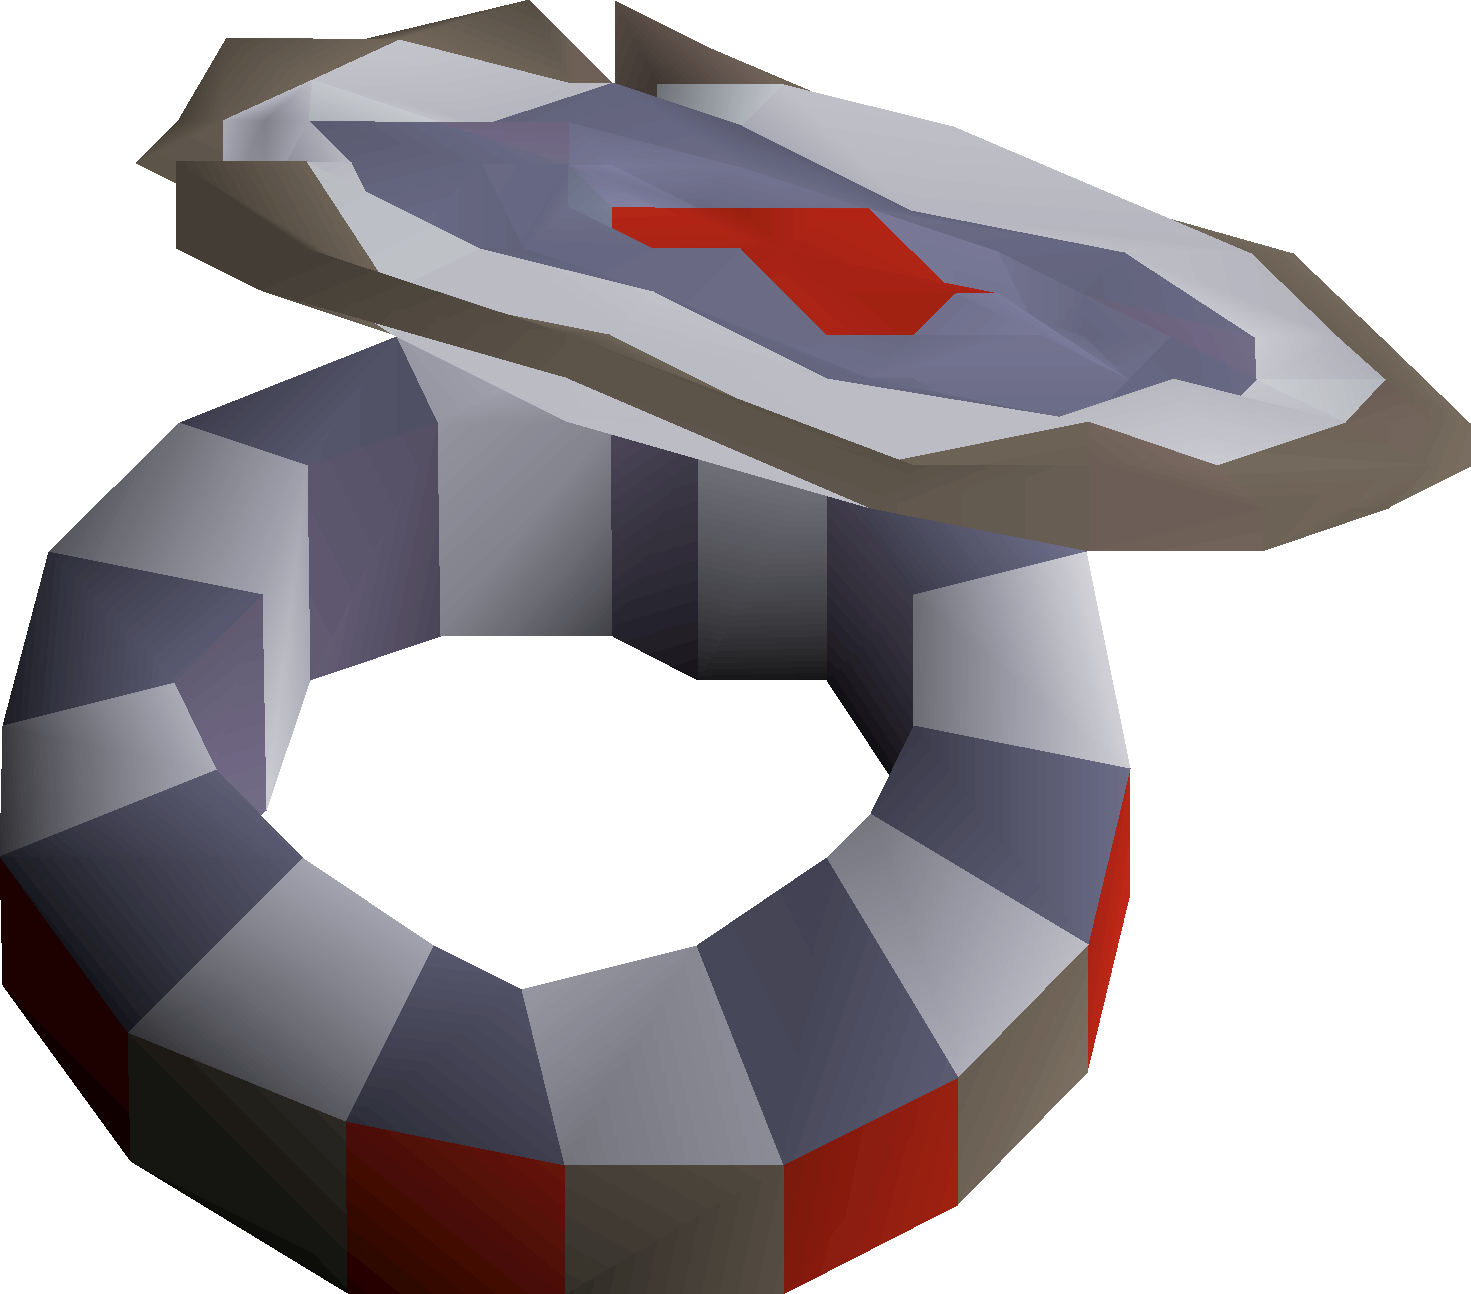 Tyrannical ring - OSRS Wiki